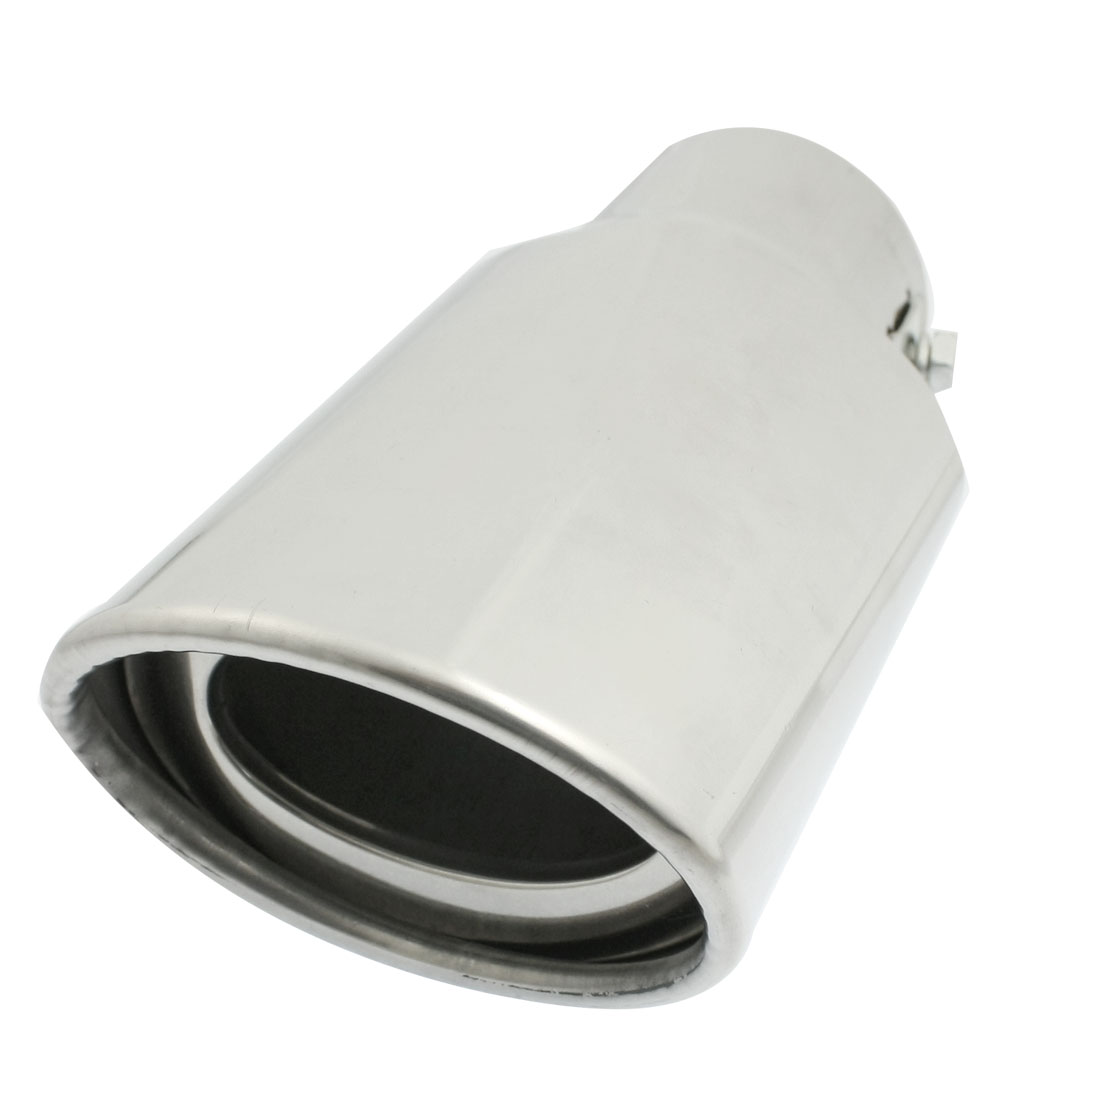 "Silver Tone 2.2"" Diameter Inlet Exhaust Pipe Tail Muffler Tip"